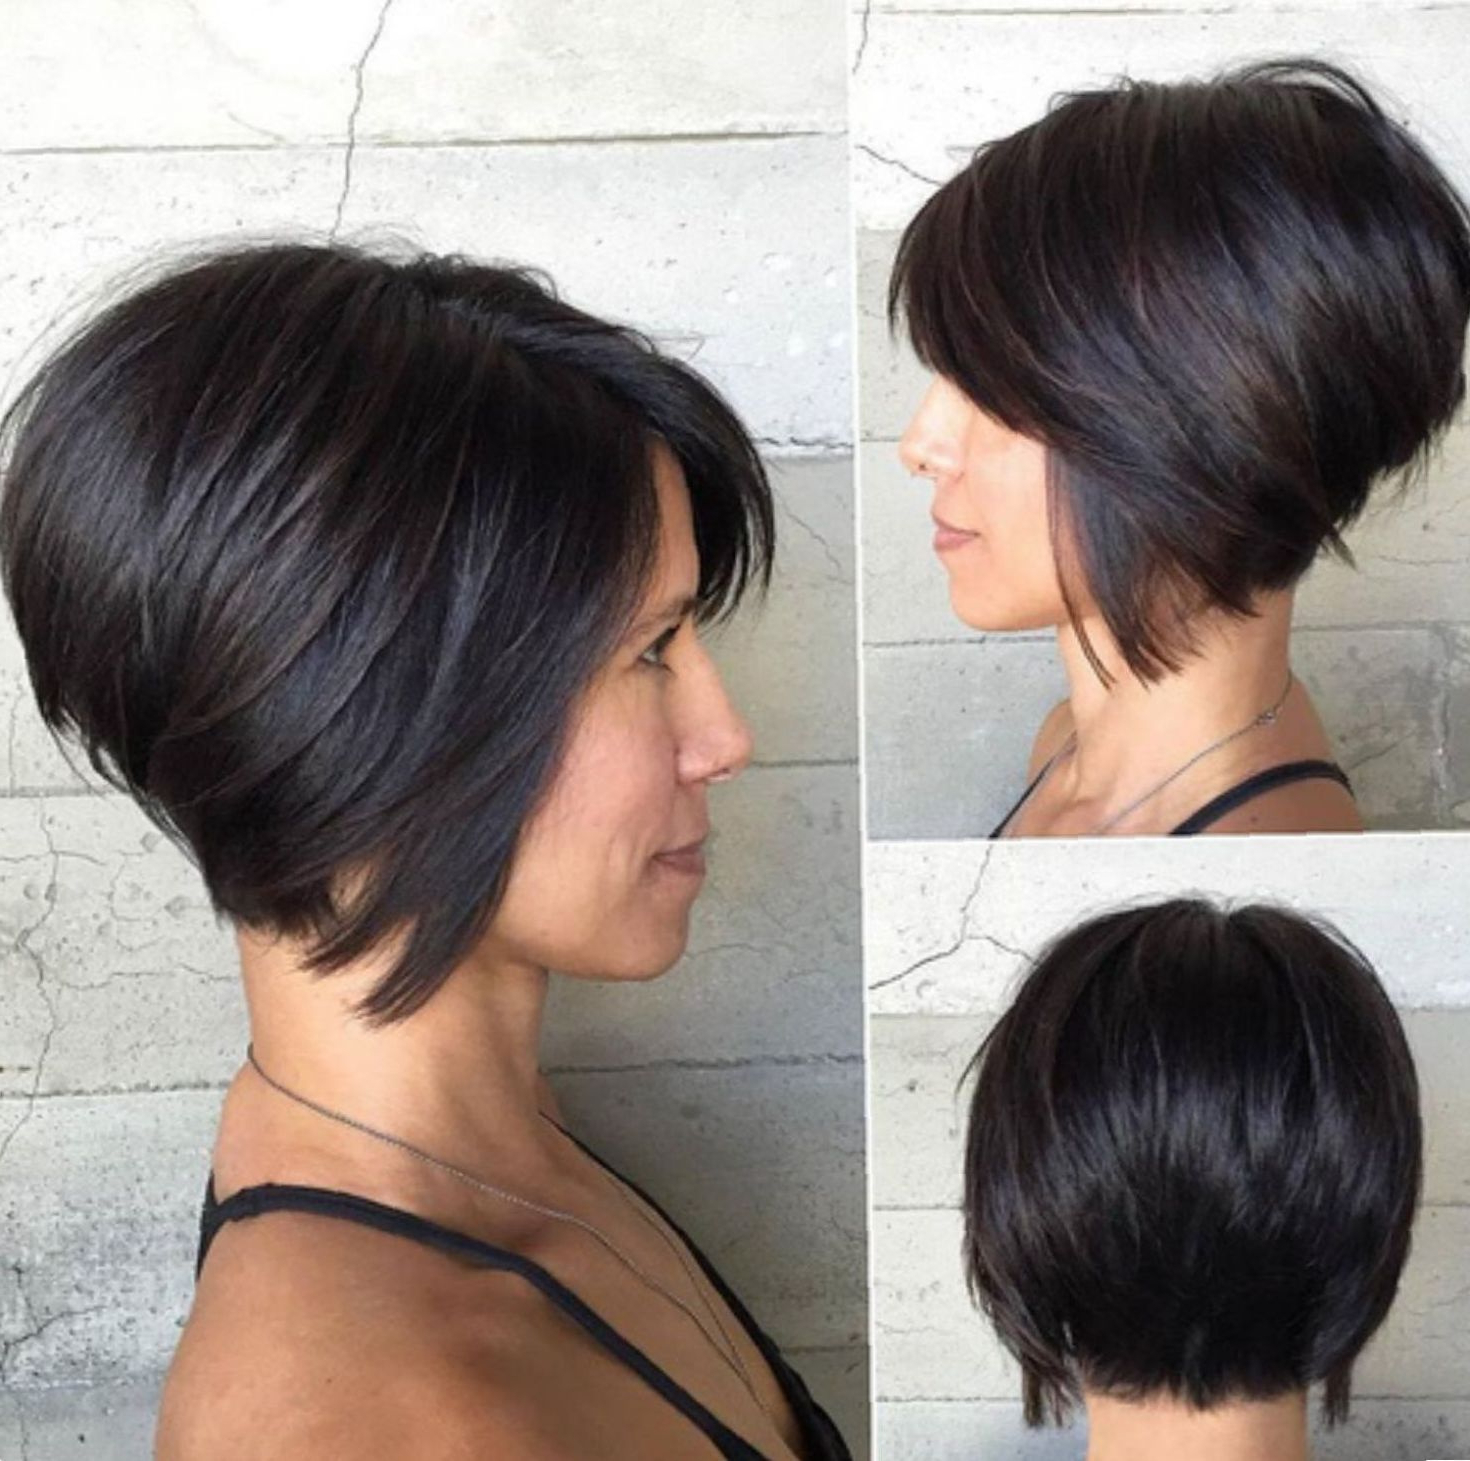 Fashion : Super Amazing Contemporary Pixie Hairstyles Regarding Classy Pixie Haircuts (Gallery 9 of 20)